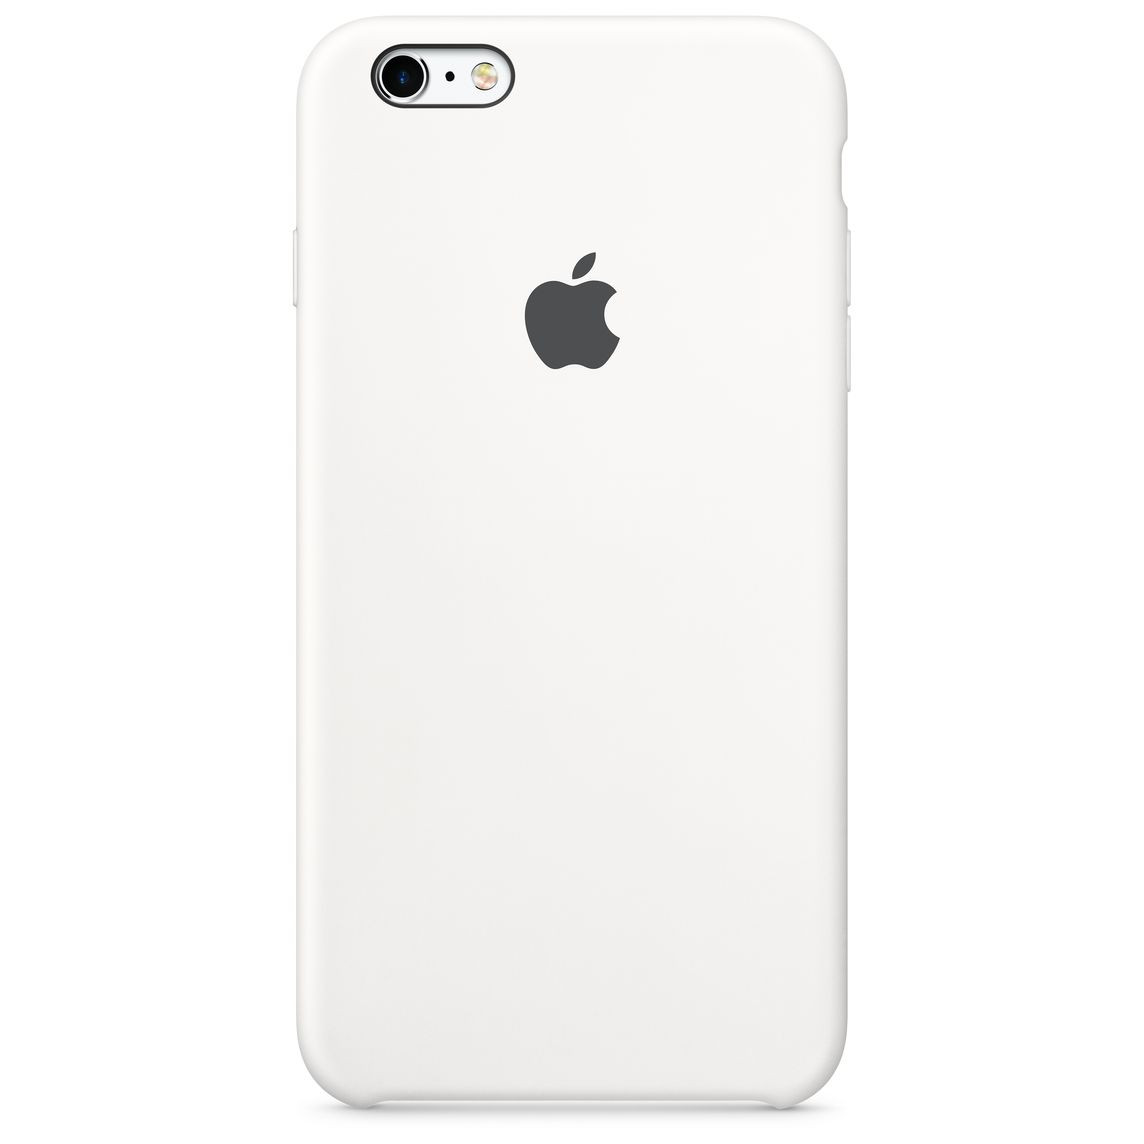 finest selection 46a74 3f540 iPhone 6 Plus / 6s Plus Silicone Case - White